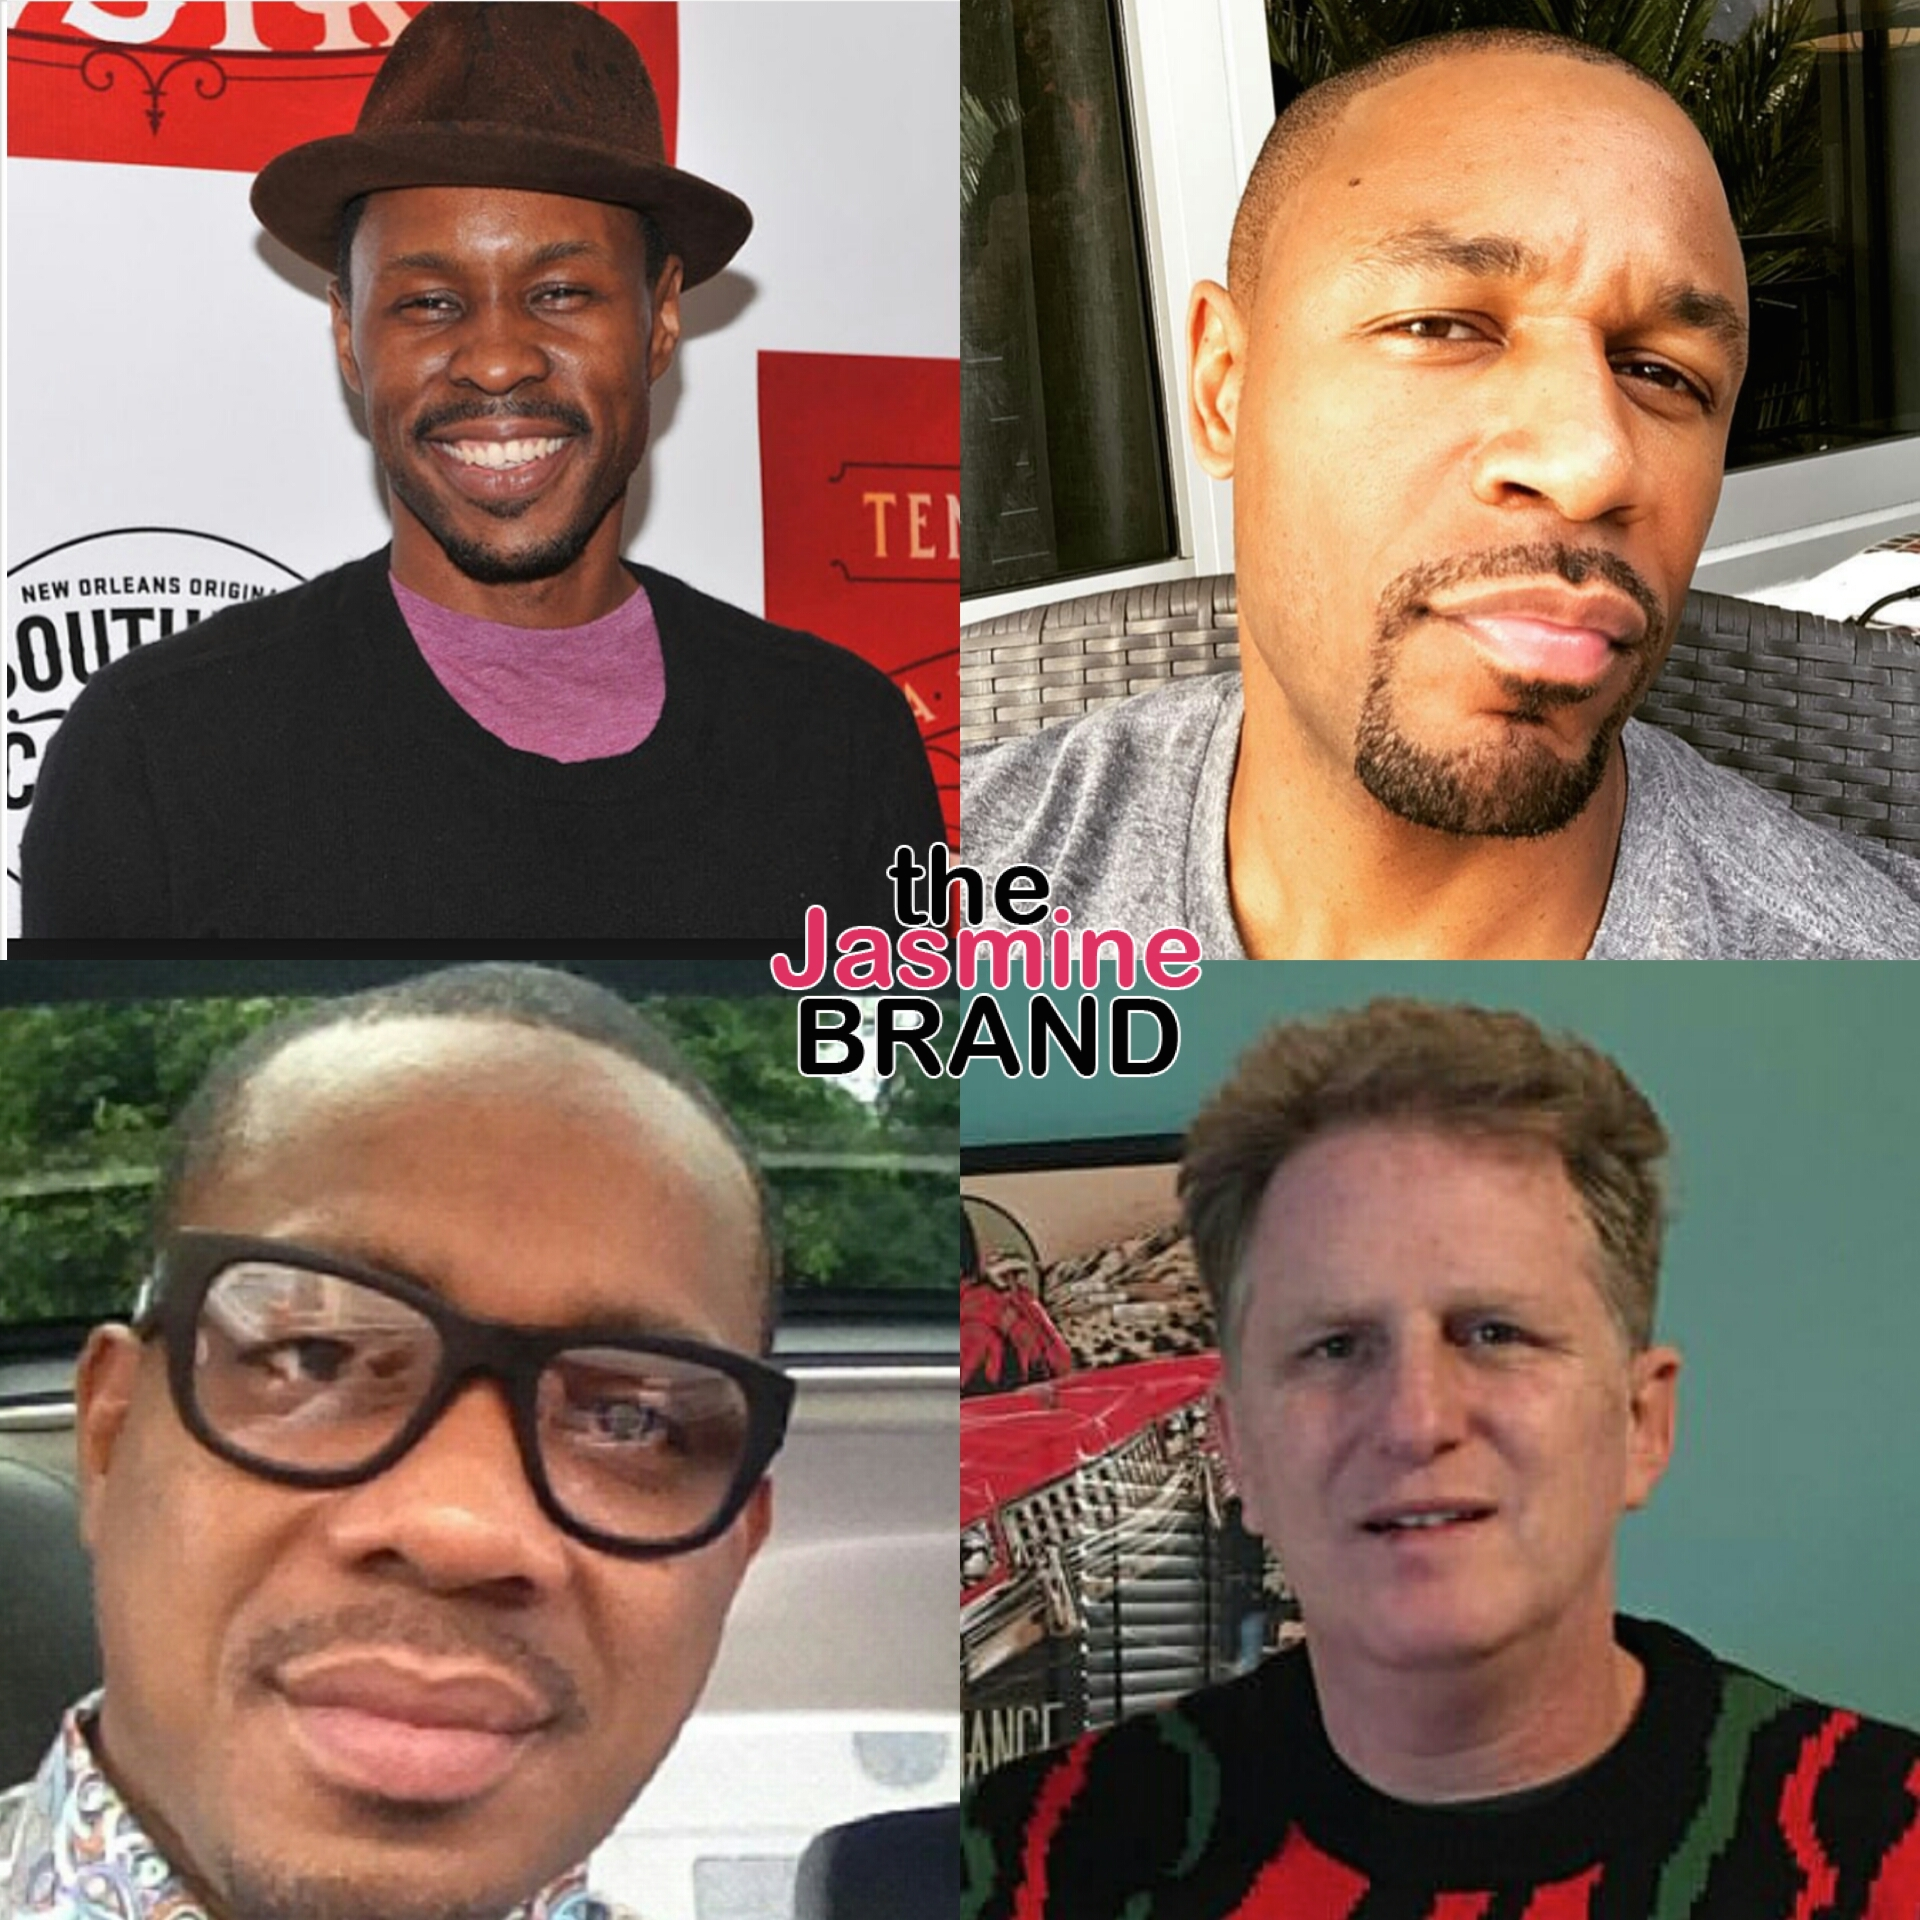 Wood Harris, Duane Martin, Tank, Michael Rapaport New Edition-the jasmine brand